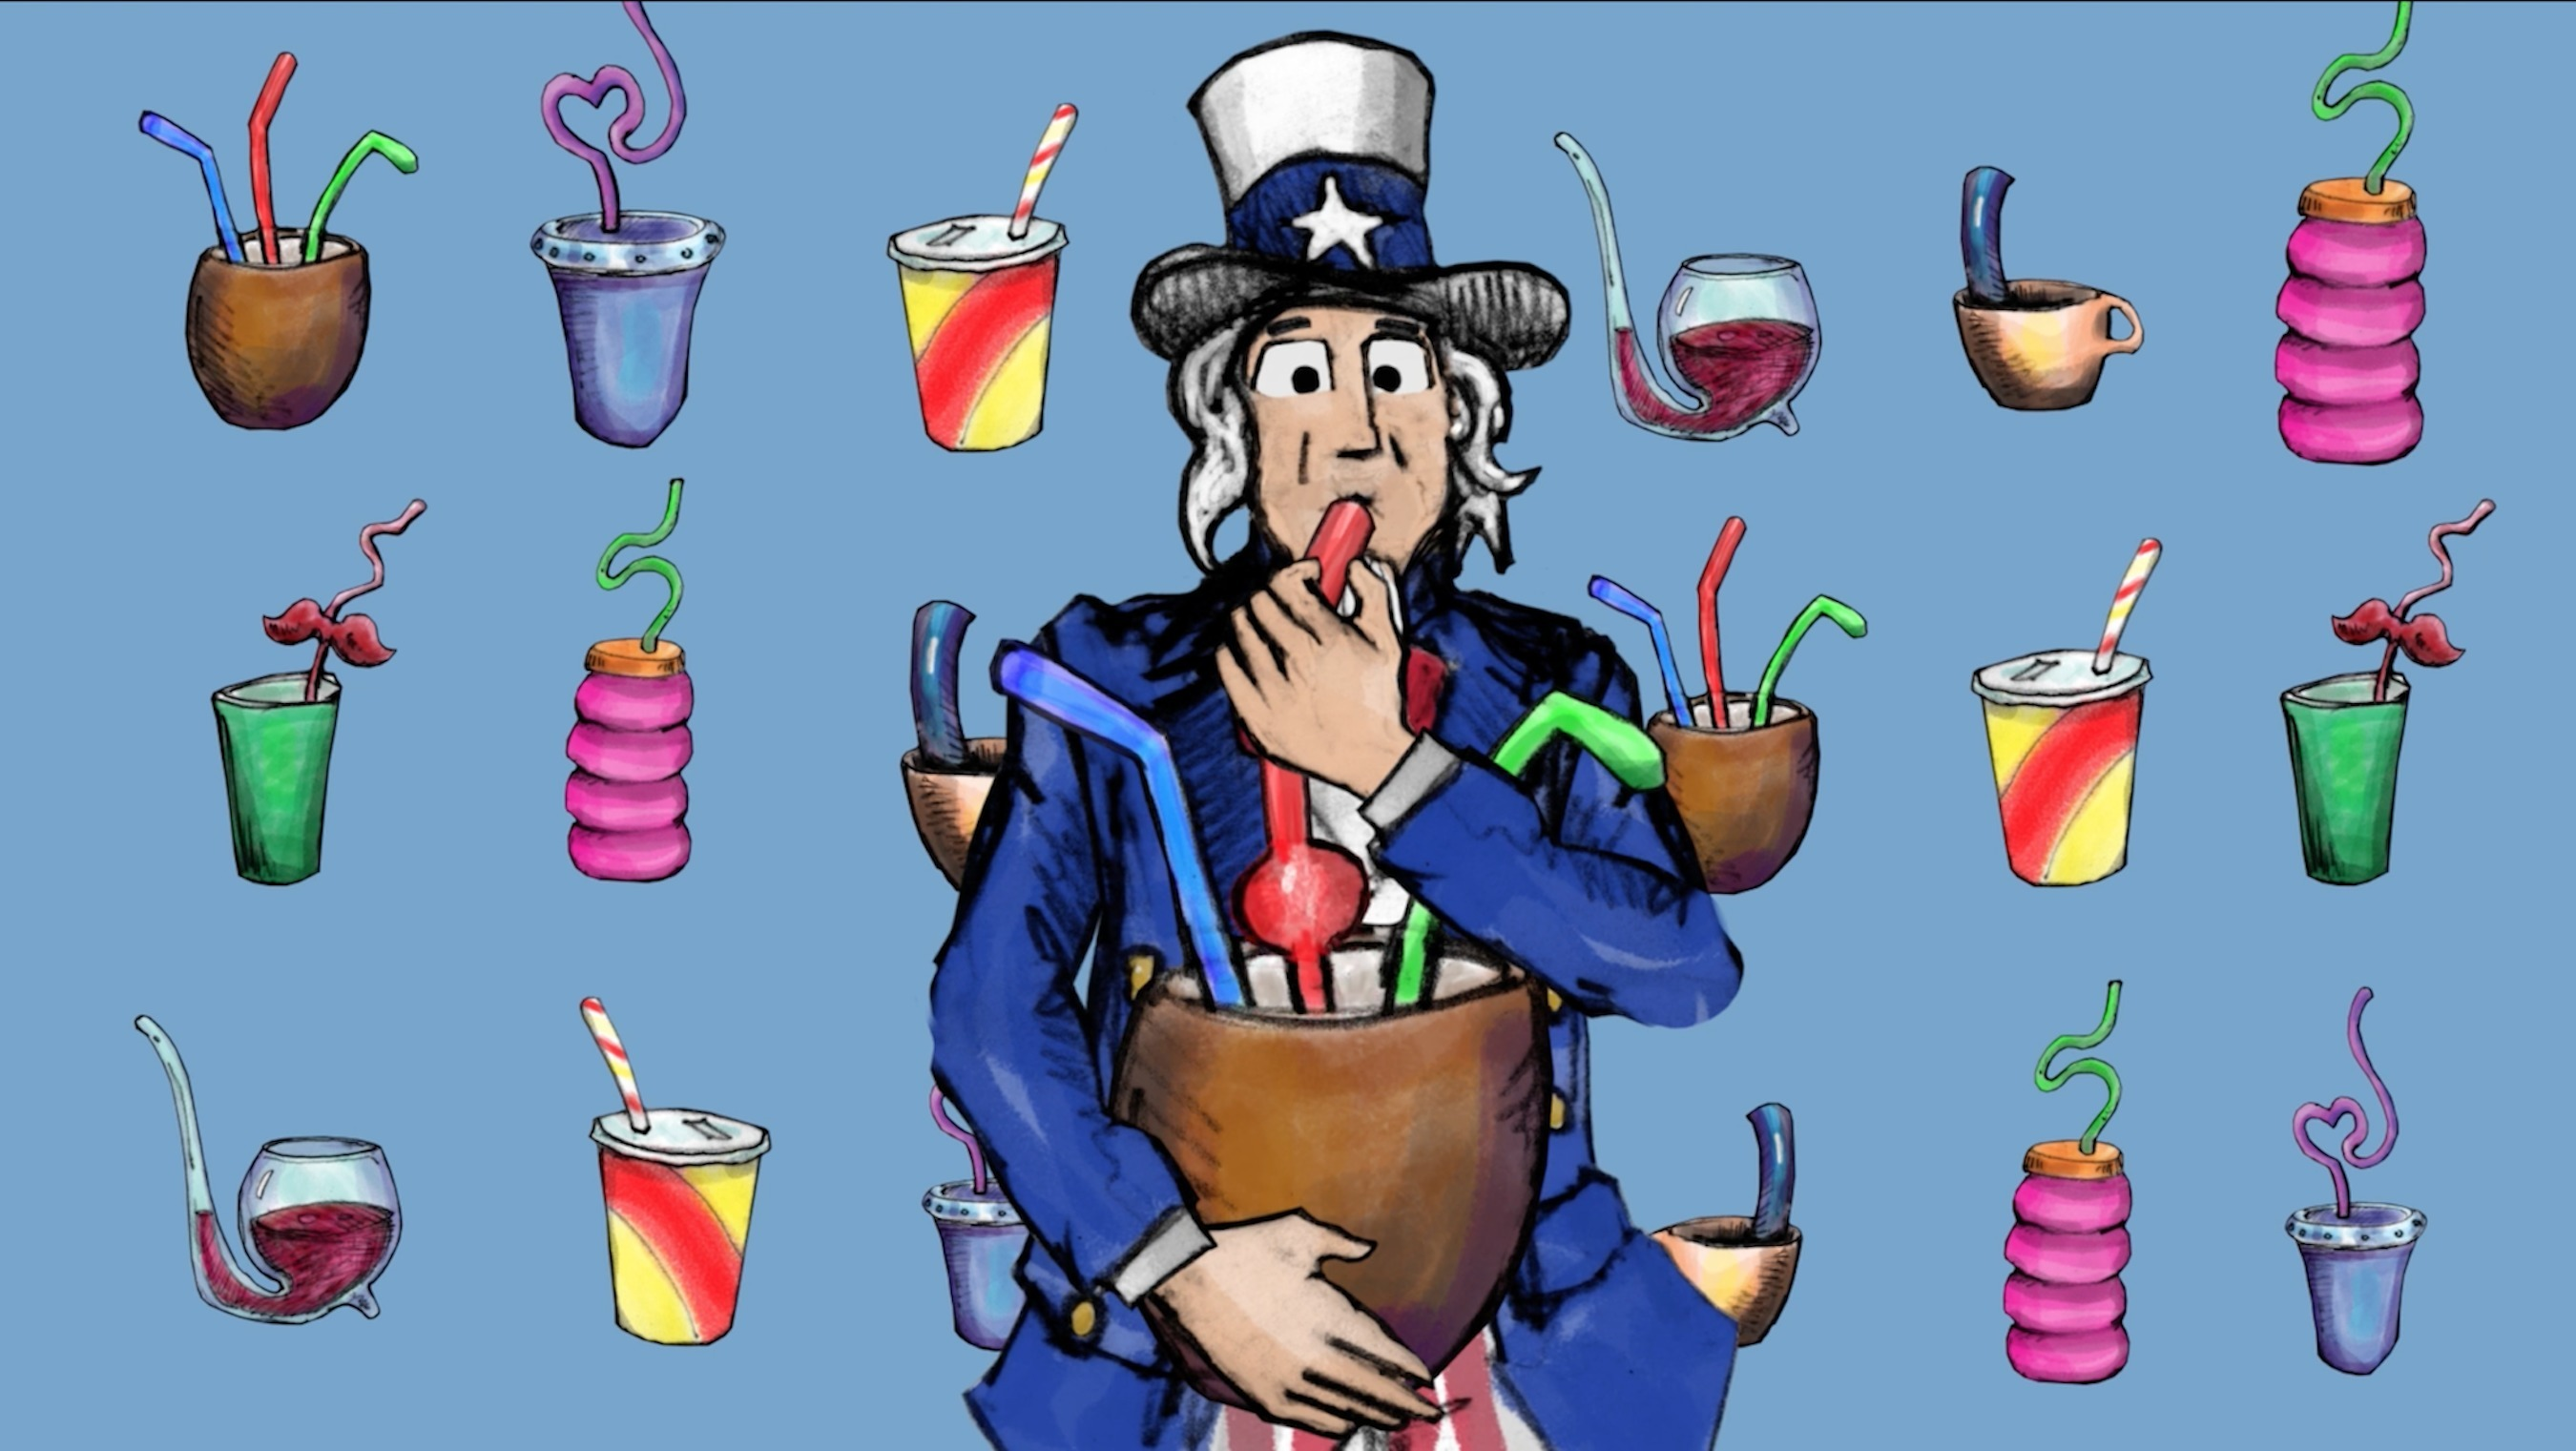 2700x1521 Uncle Sam, Stills, in Straws, by John S. Quarterman, for WWALS.net, 26 May 2018